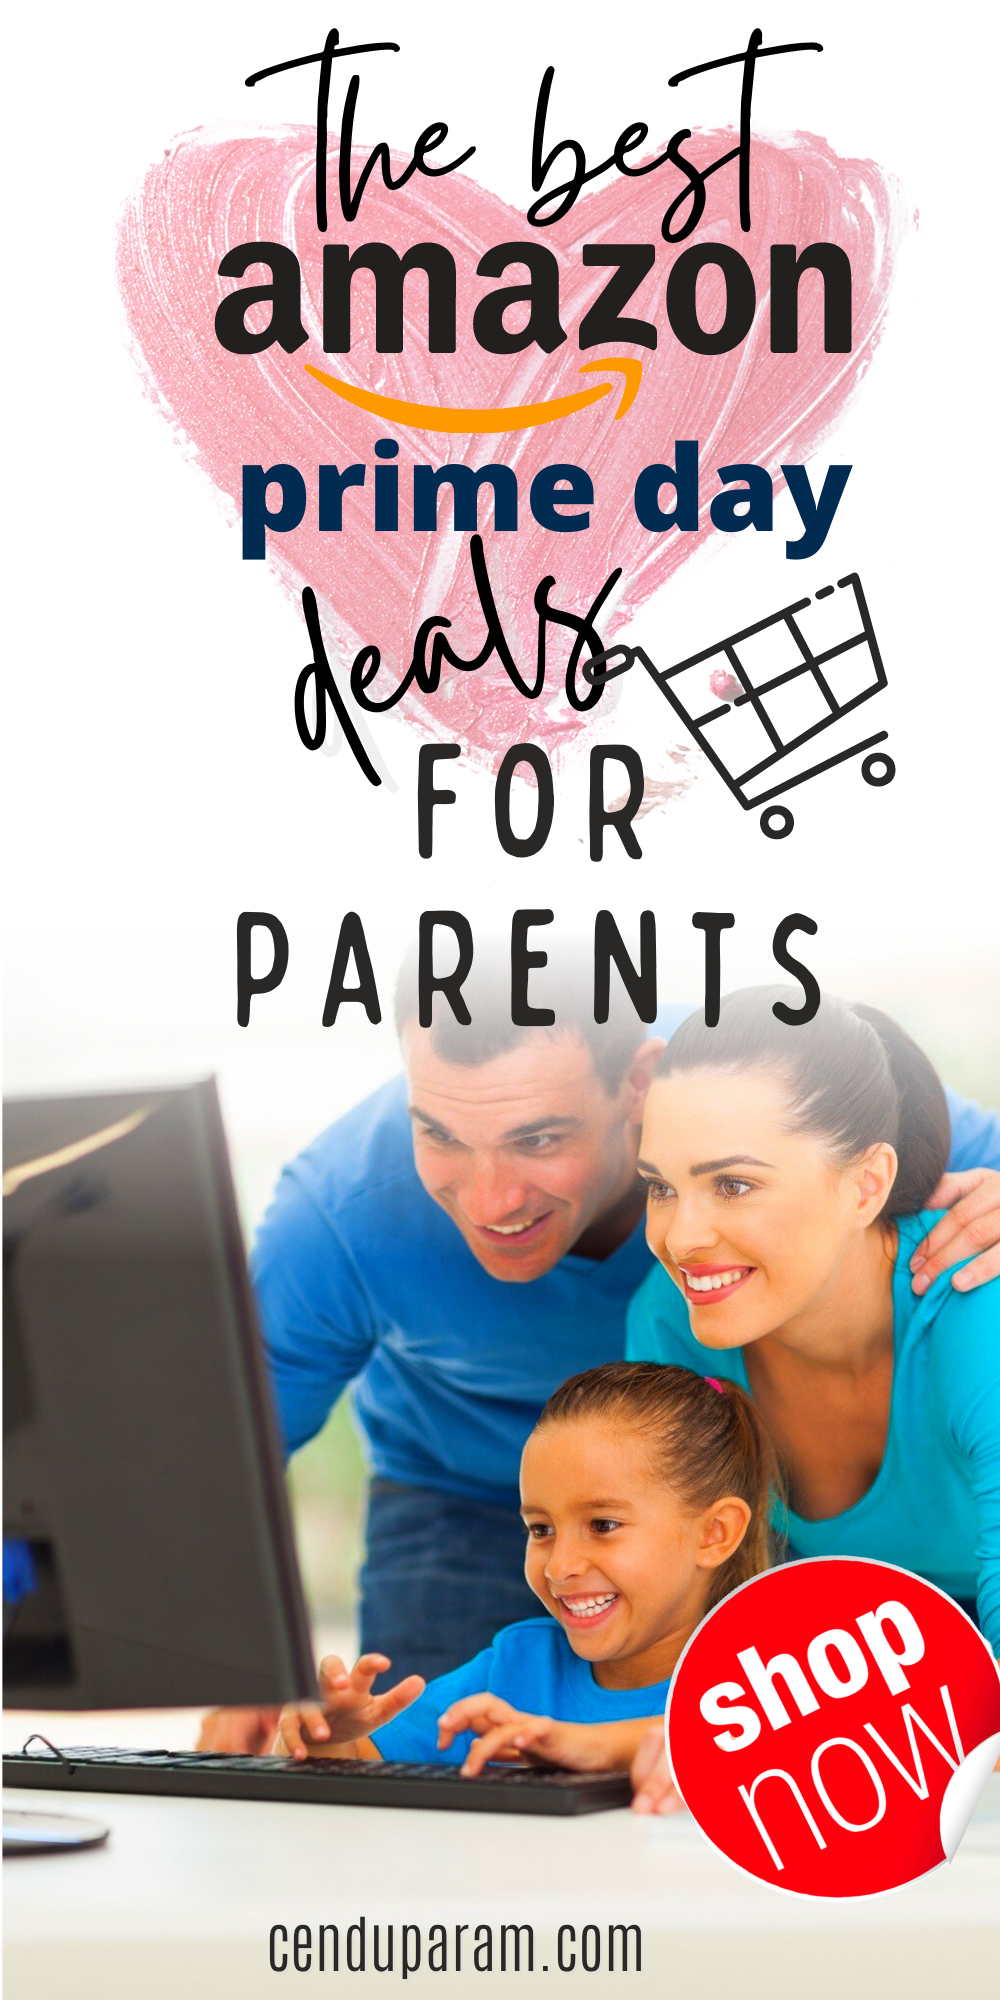 Best Amazom Prime Day Deals For Families (Parents and Kids)